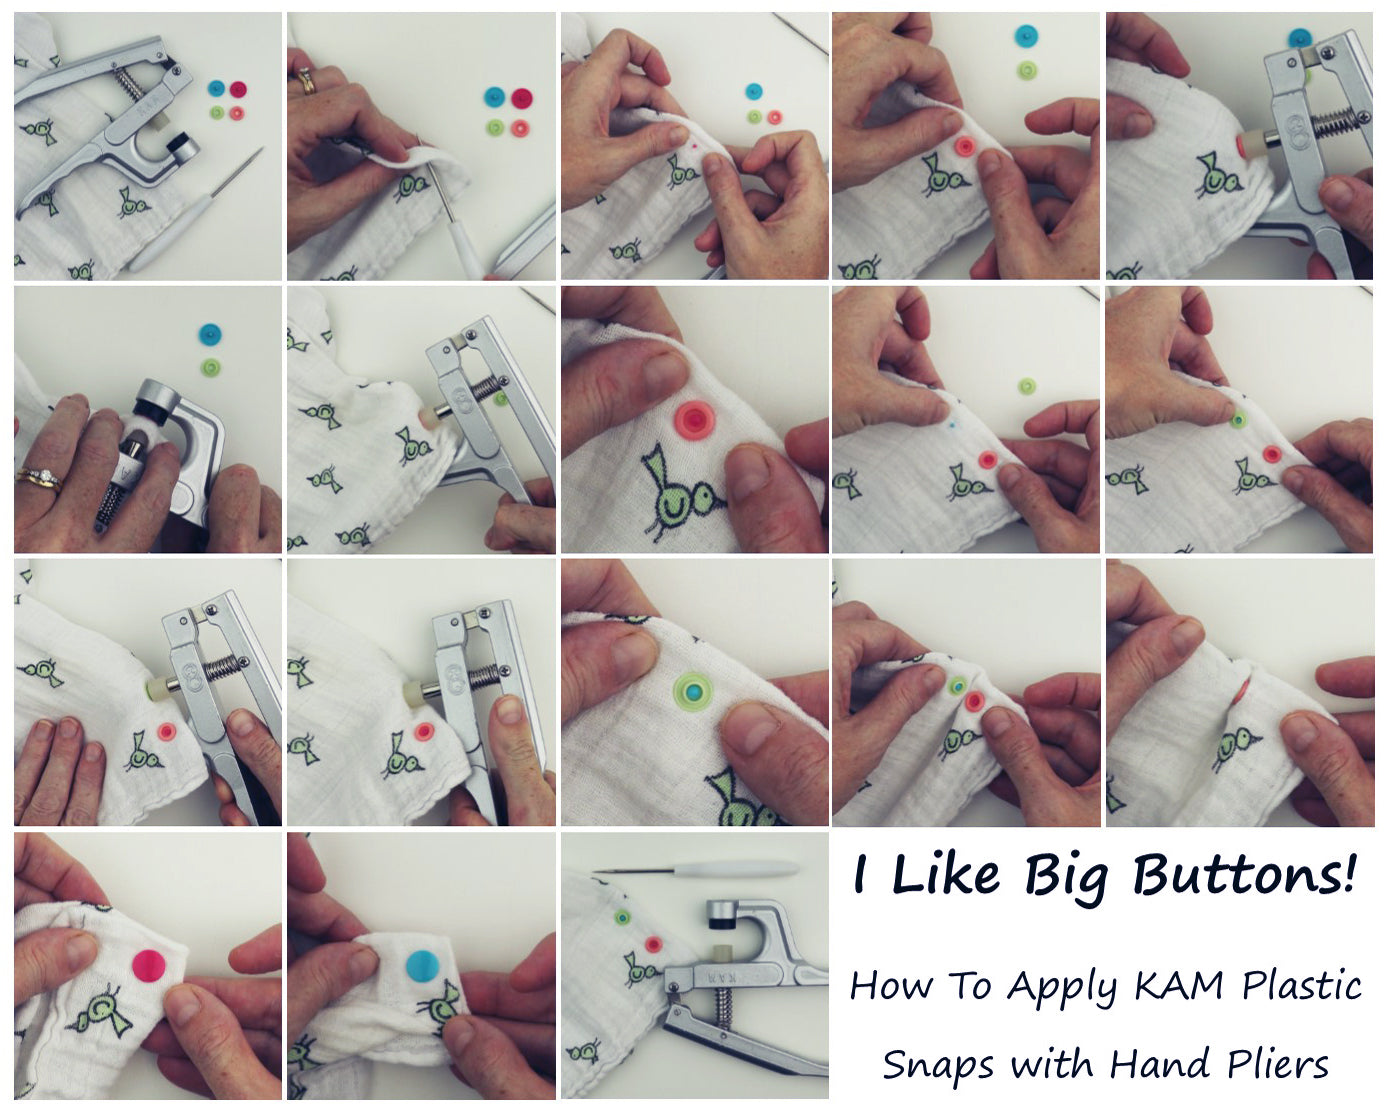 How To Install A KAM Plastic Snap